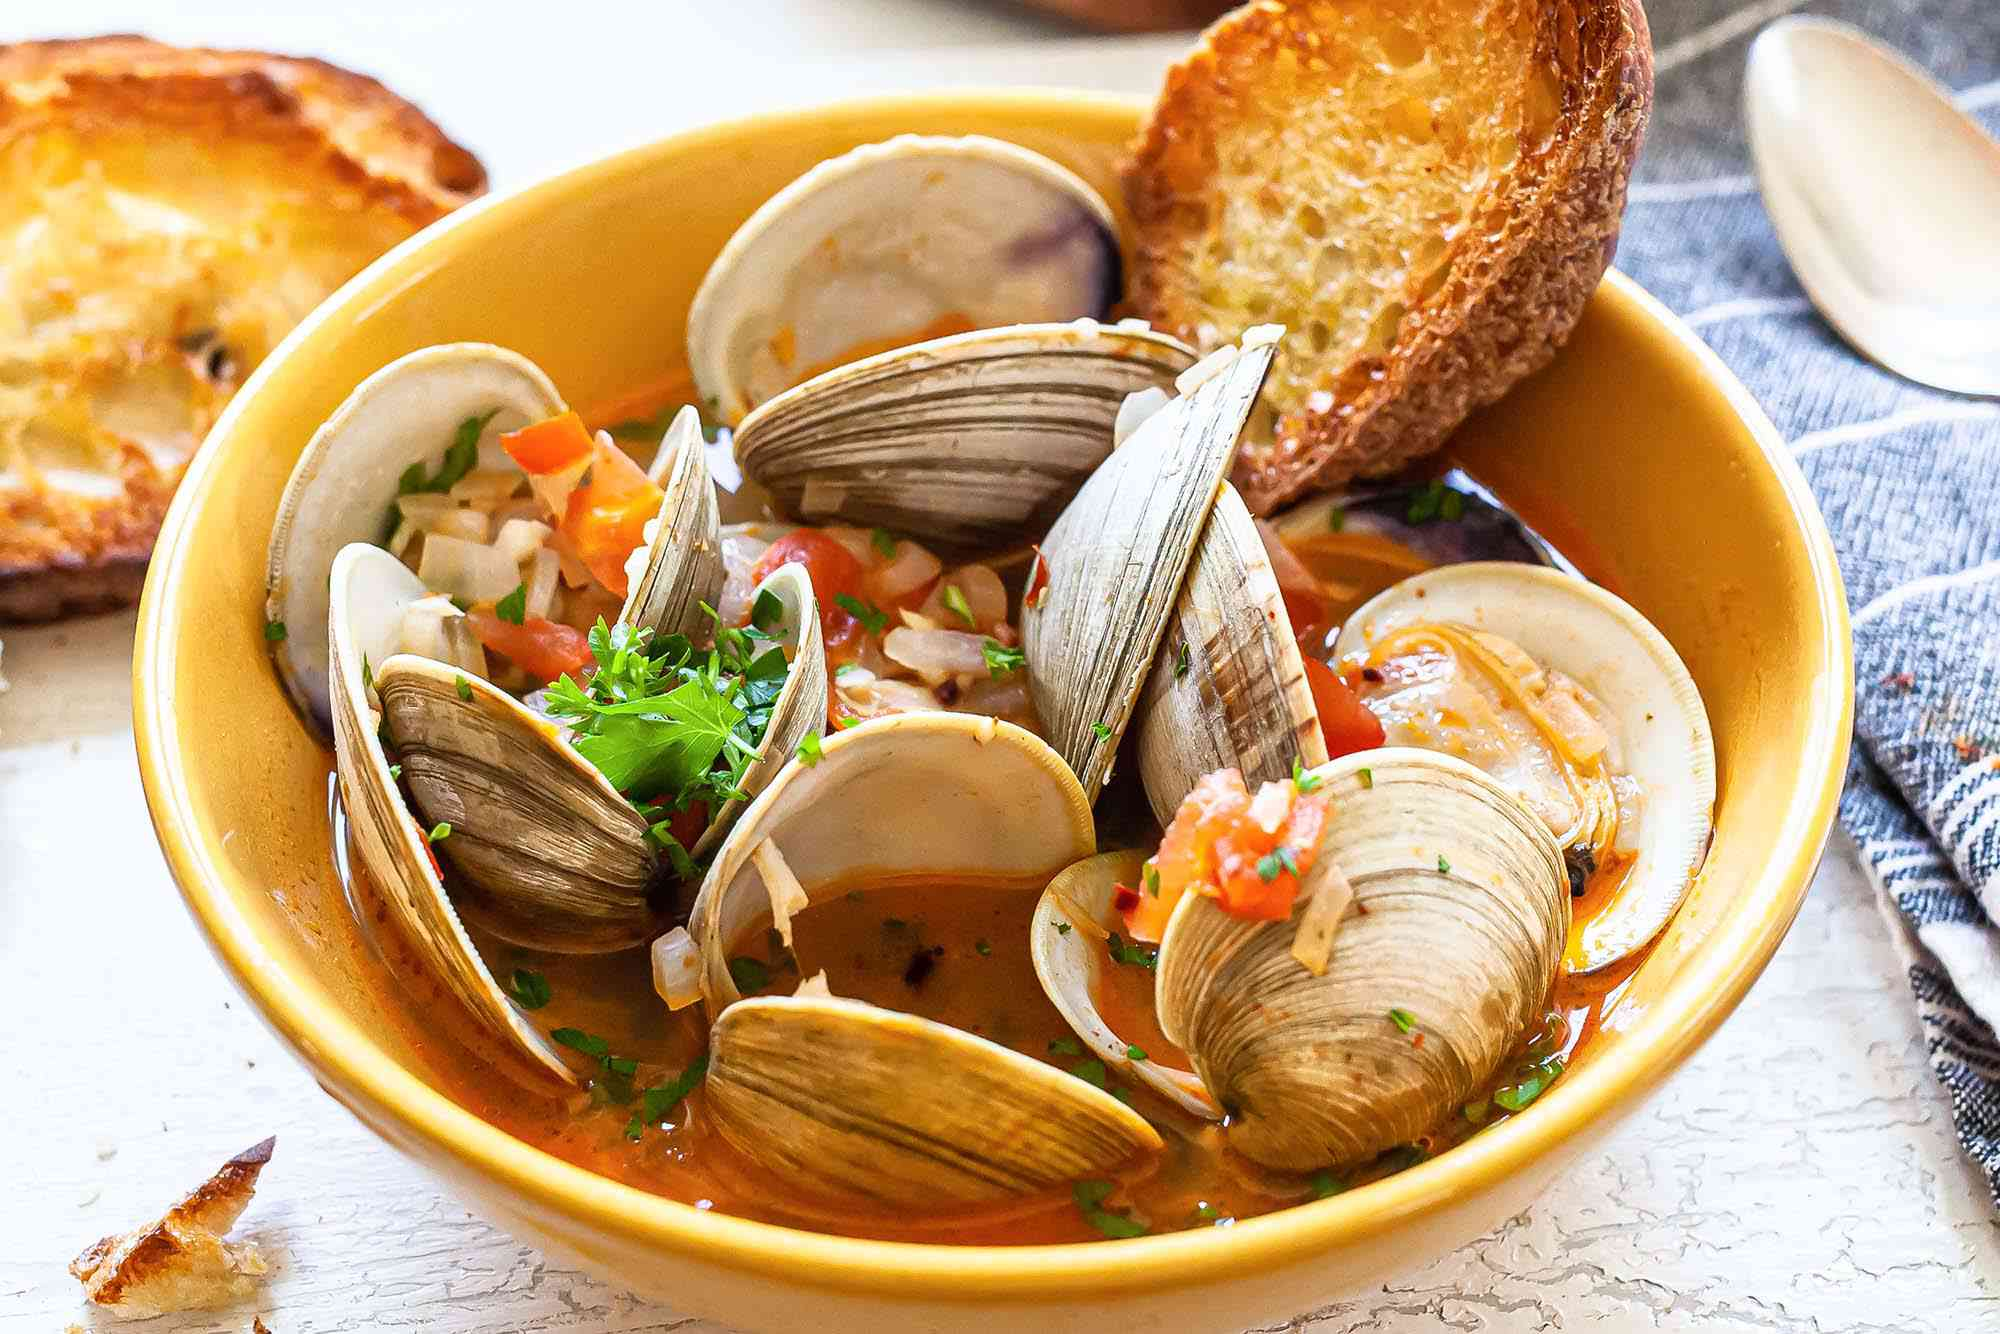 Yelllow bowl of chorizo clams with grilled bread with chopped tomatoes on top.